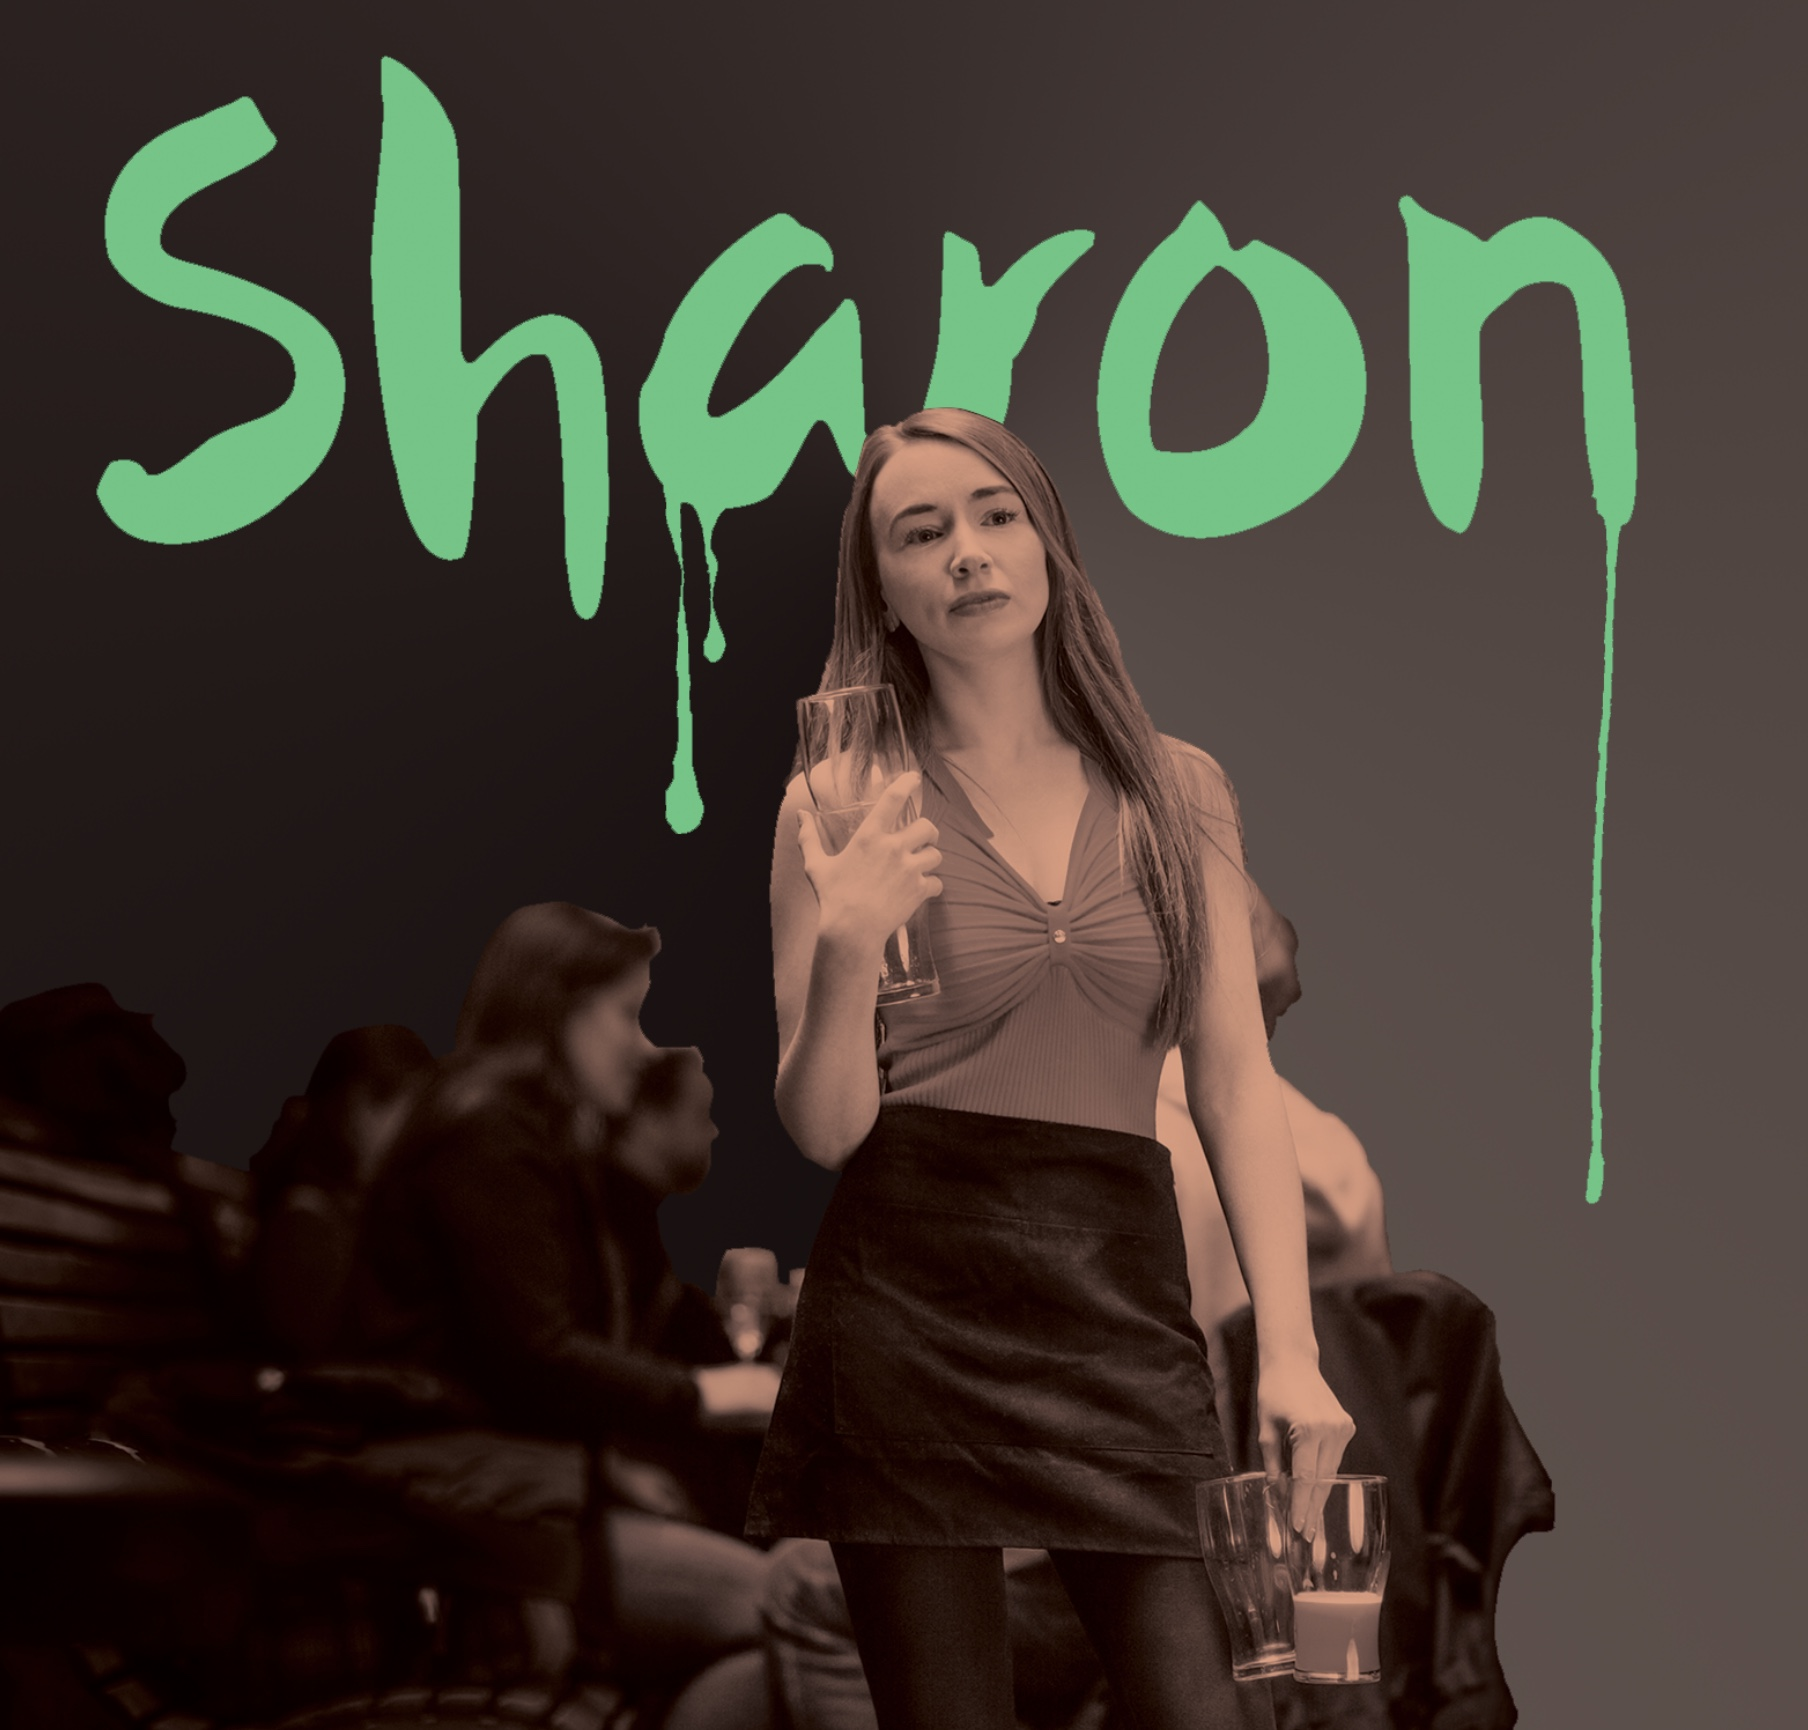 Sharon by Katie Holly